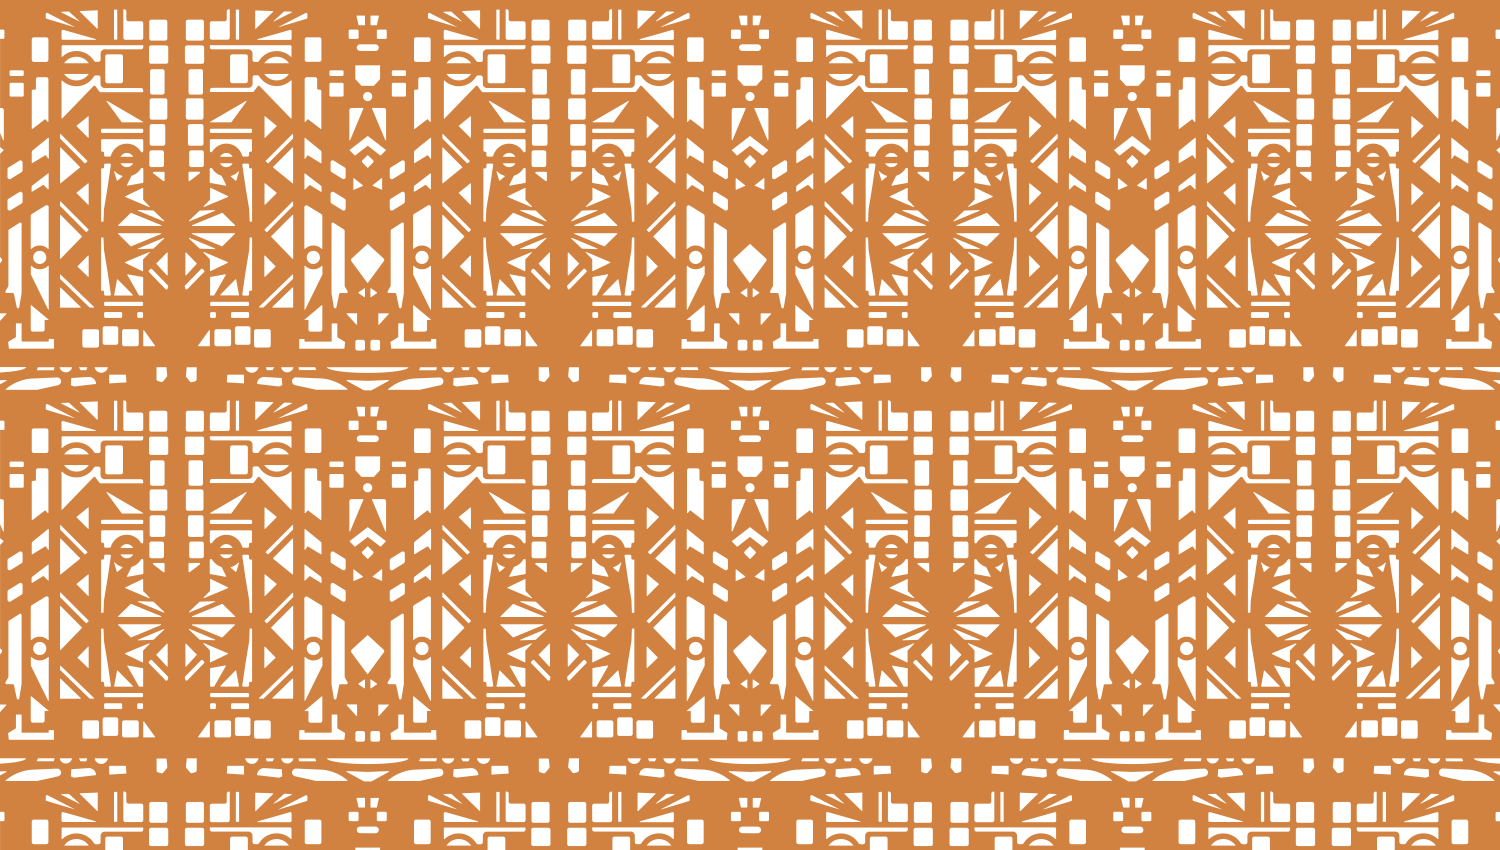 Parasoleil™ Kitty's Pattern© pattern displayed with a ochre color overlay